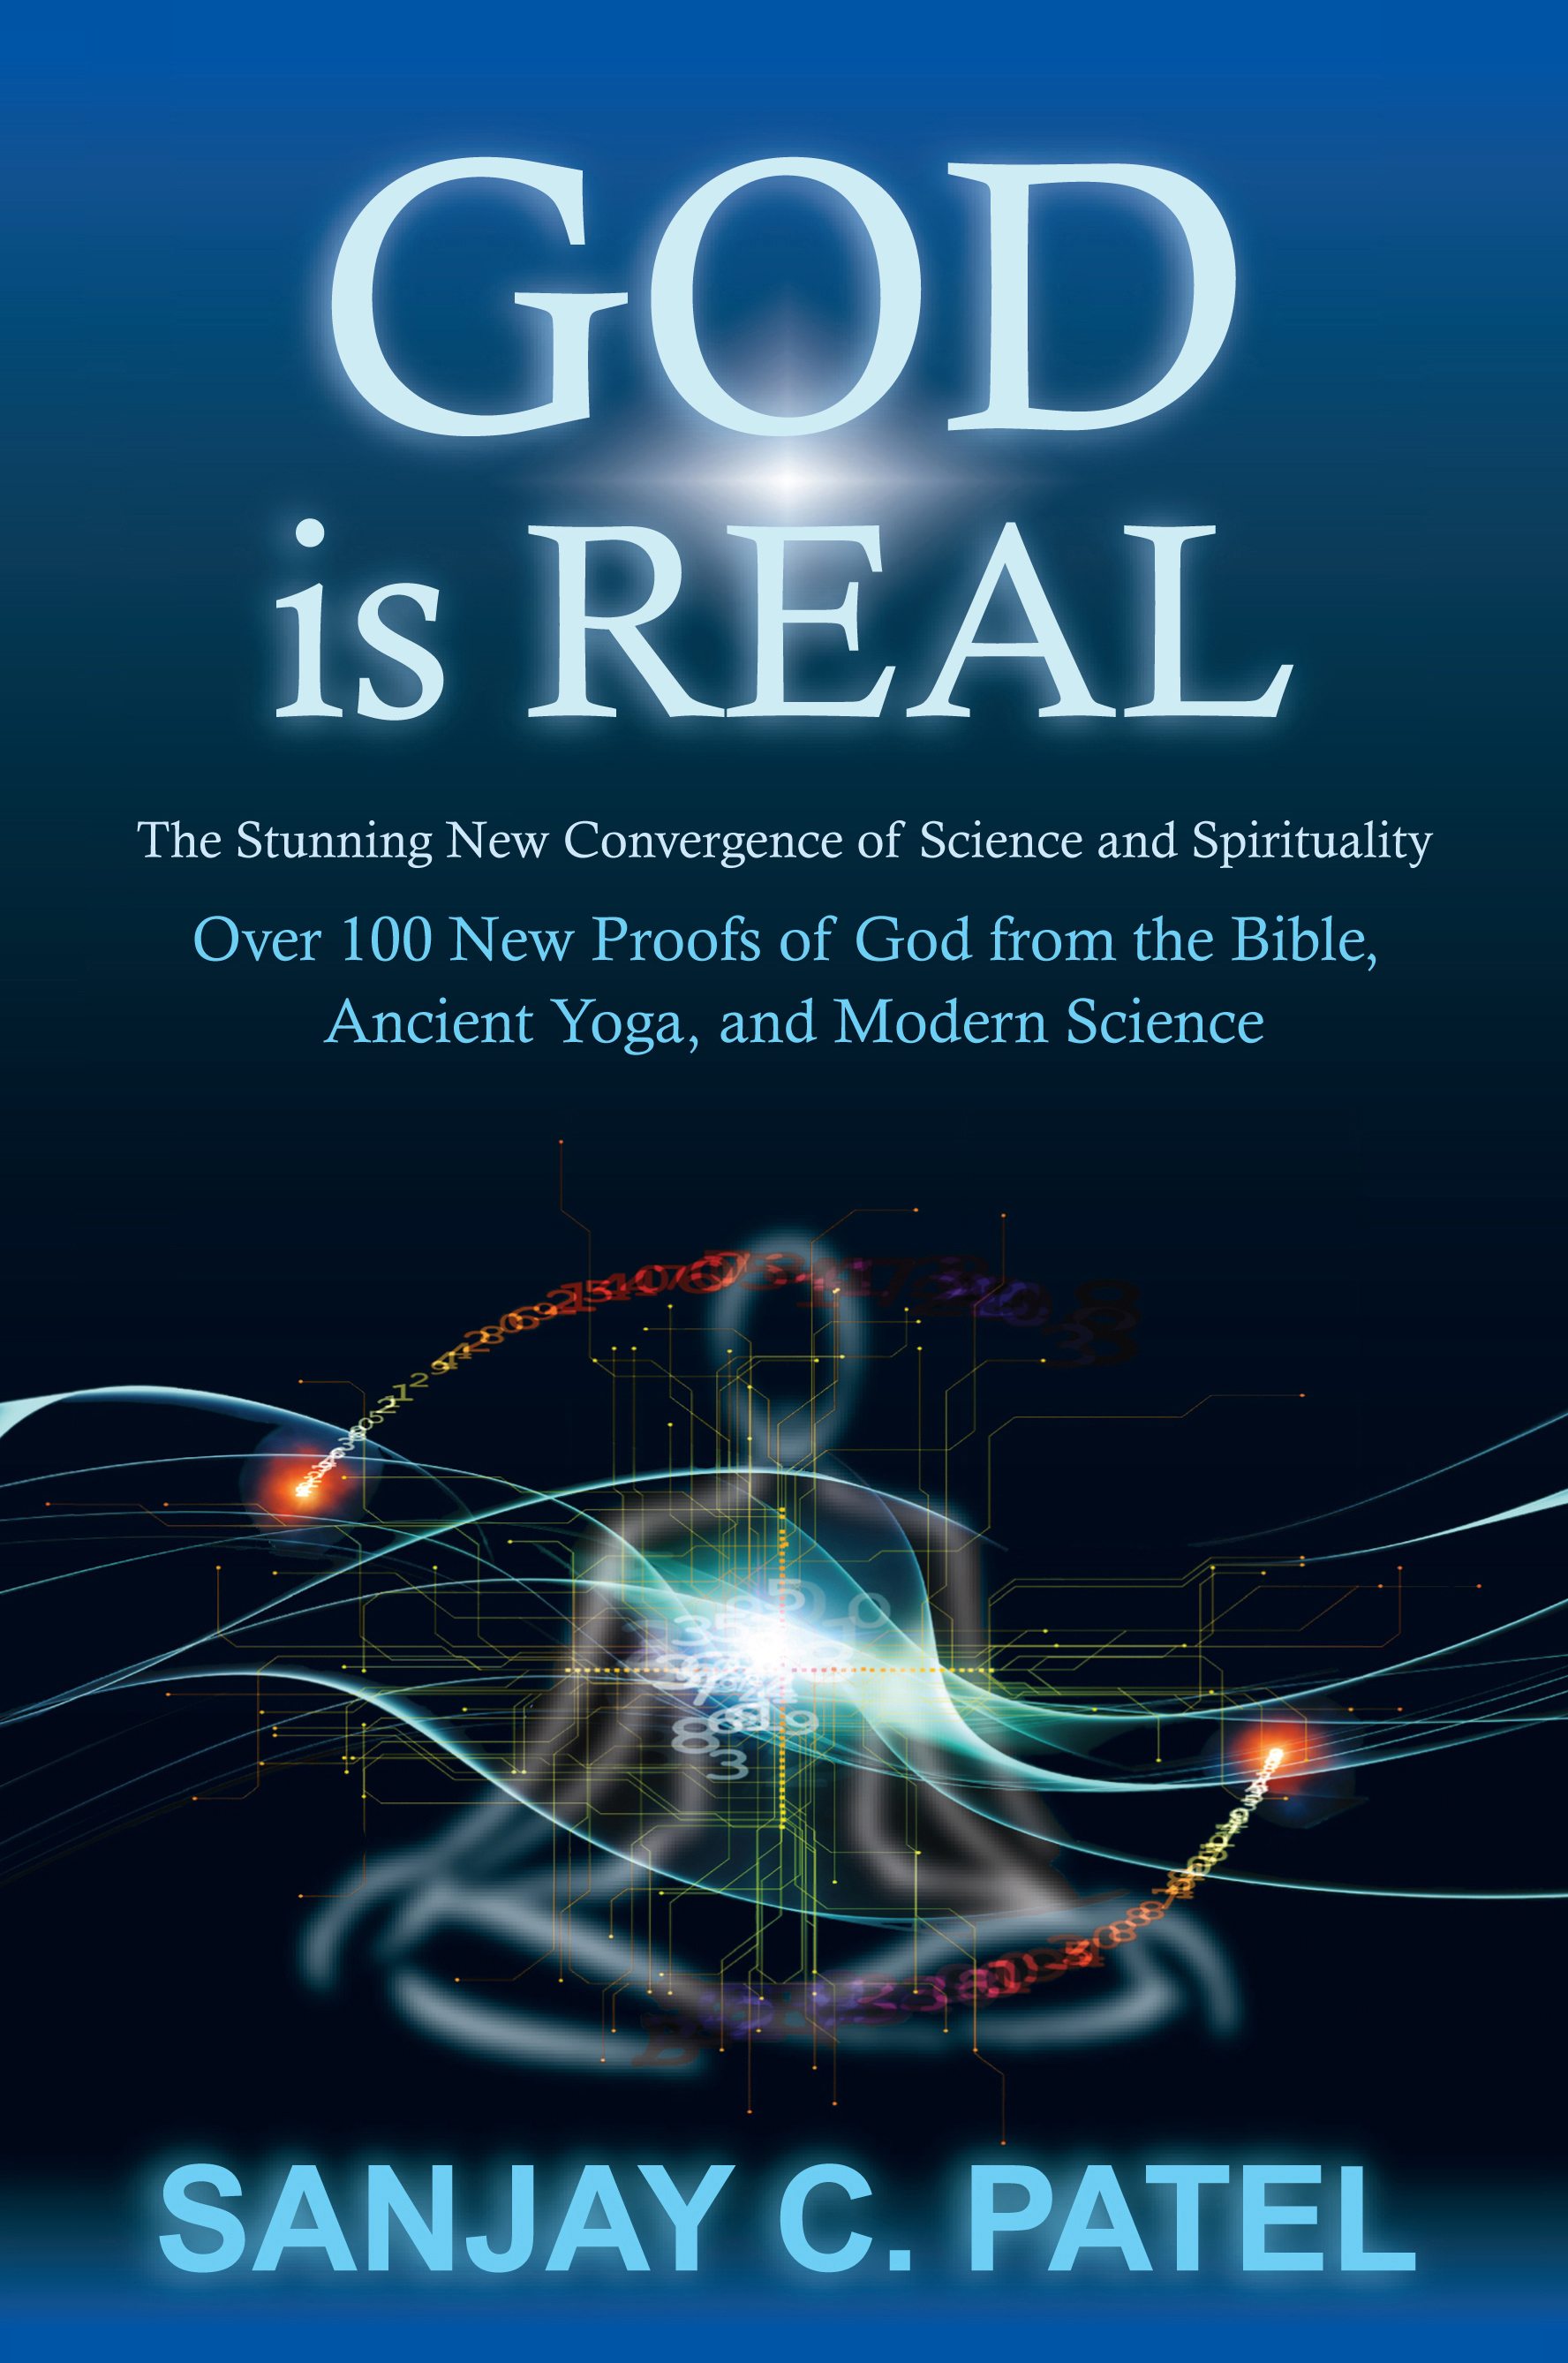 is god real See why the intricate dna in our body's cells caused a famous atheist to conclude that god must be real.